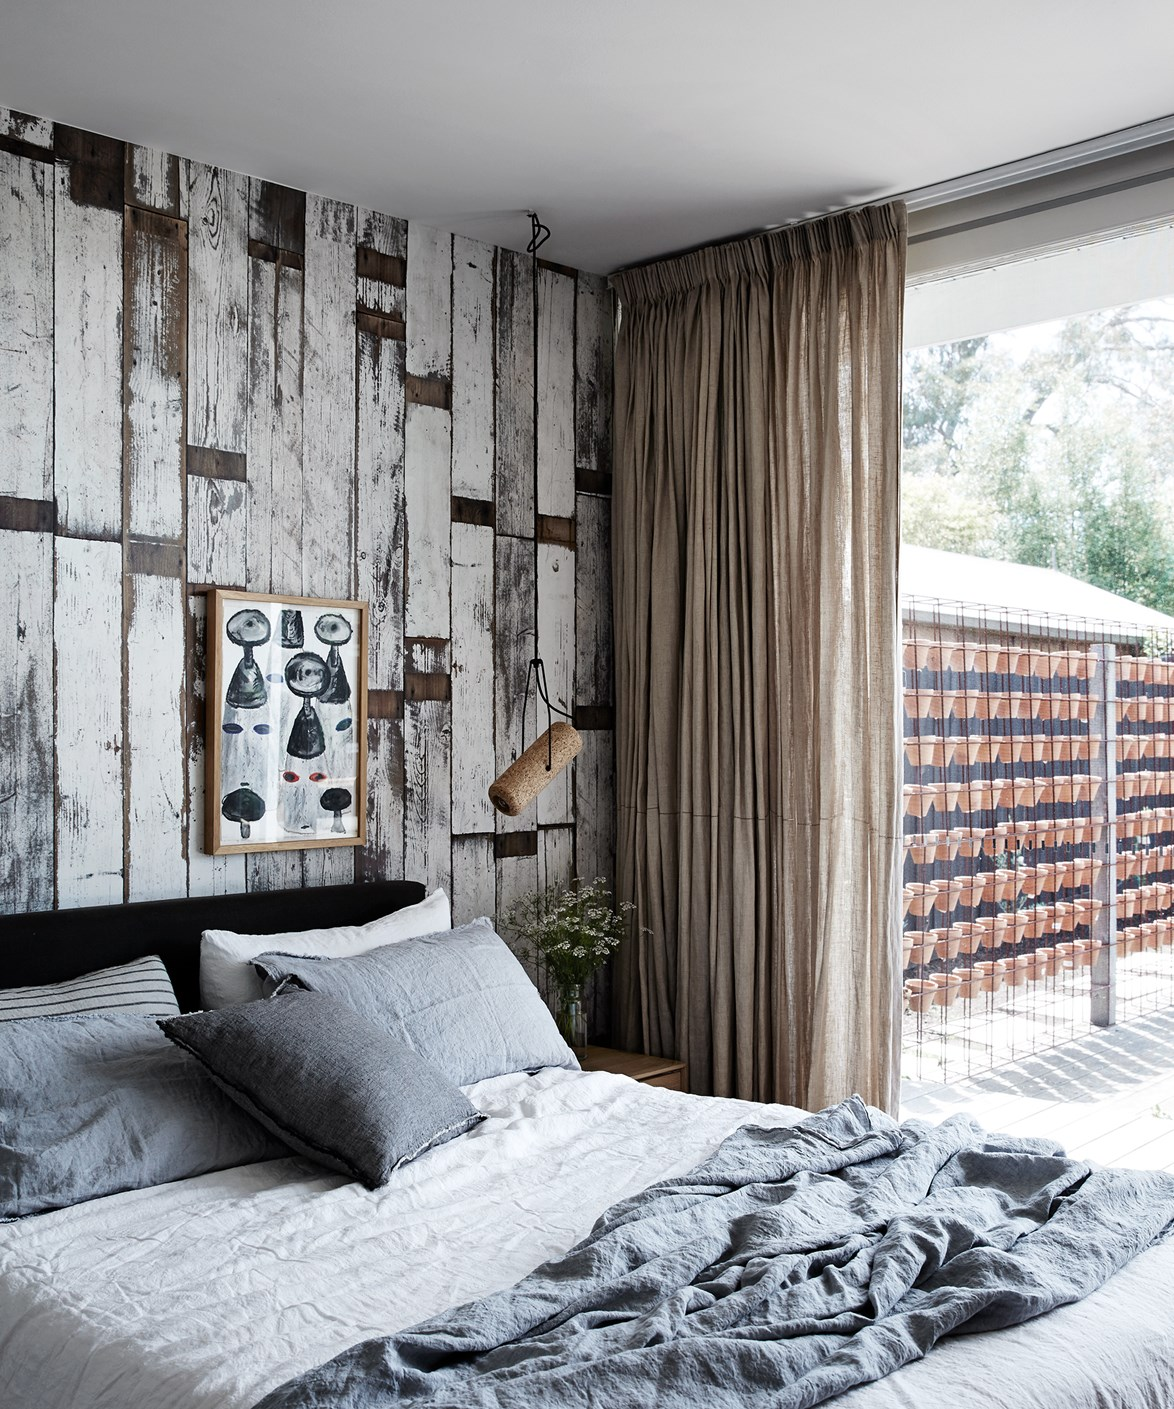 For a modern take on wallpaper, try realistic styles like this faux wood feature wall in this [1960's Melbourne home](http://www.homestolove.com.au/a-cheerful-and-kid-friendly-home-renovation-3774). Rustic and relaxed, this wallpaper works well with natural textures such as linen. *Photo: Sharyn Cairns / real living*